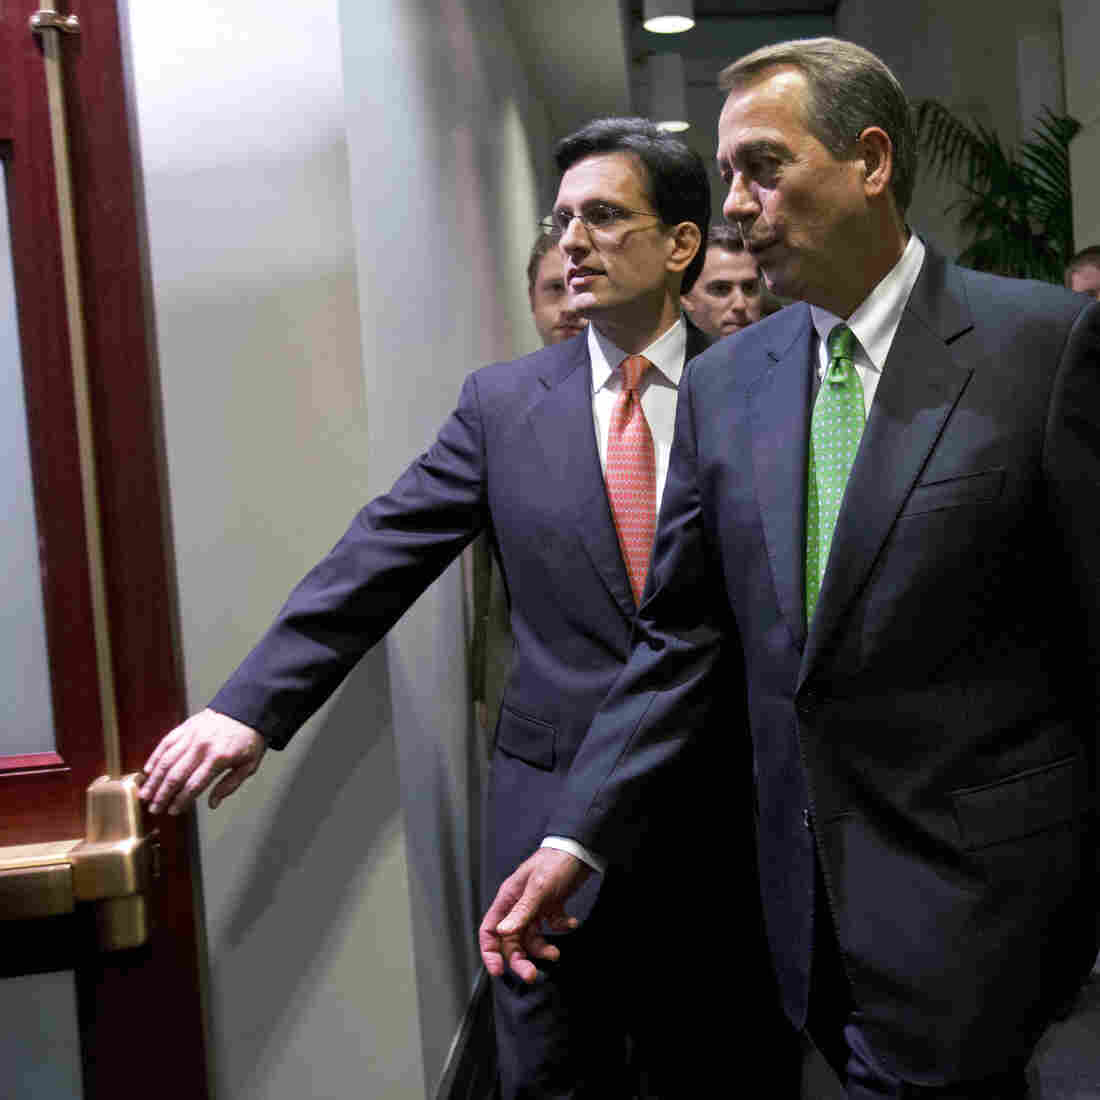 Was Boehner's Fiscal Cliff End Run Past GOP The New Normal?